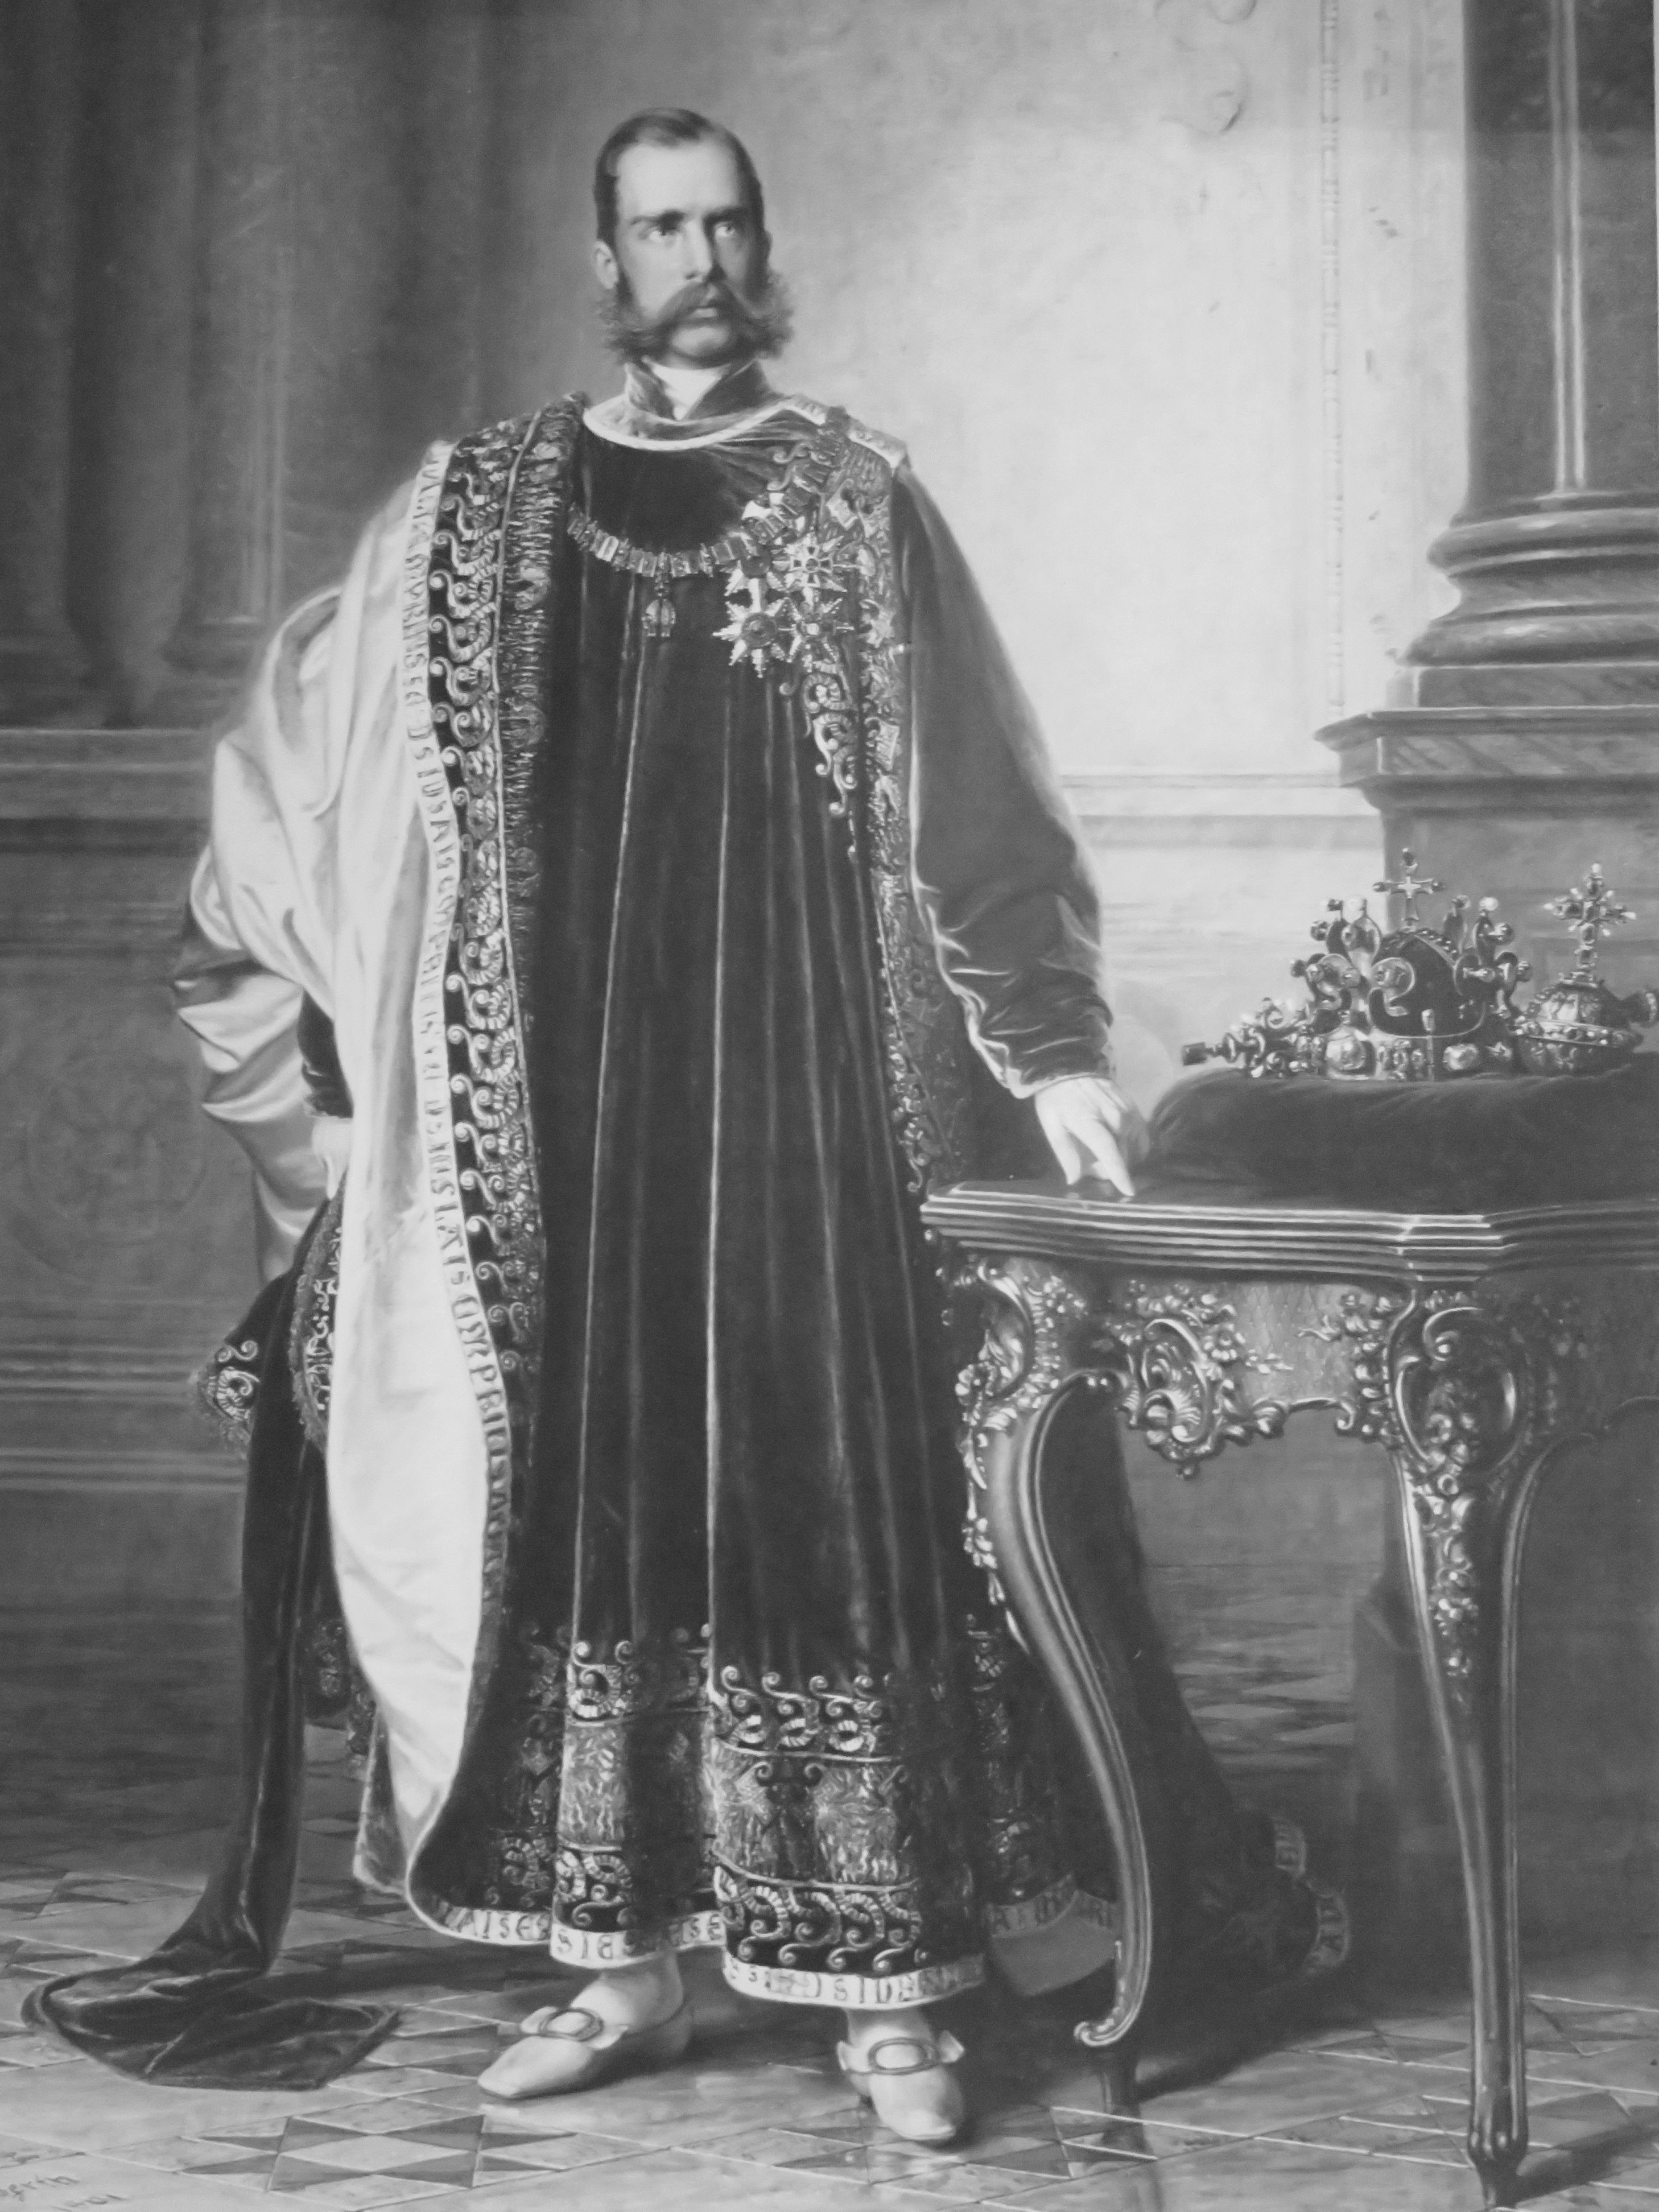 Emperor Franz Joseph in the robes of the Head and Sovereign of the Austrian Order of the Golden Fleece, next to the Crown of St. Wenceslas. Painted by Eduard von Engerth in Laxenburg 1861 for the Bohemian Diet in Prague, today in the collections of the National Museum in Prague.